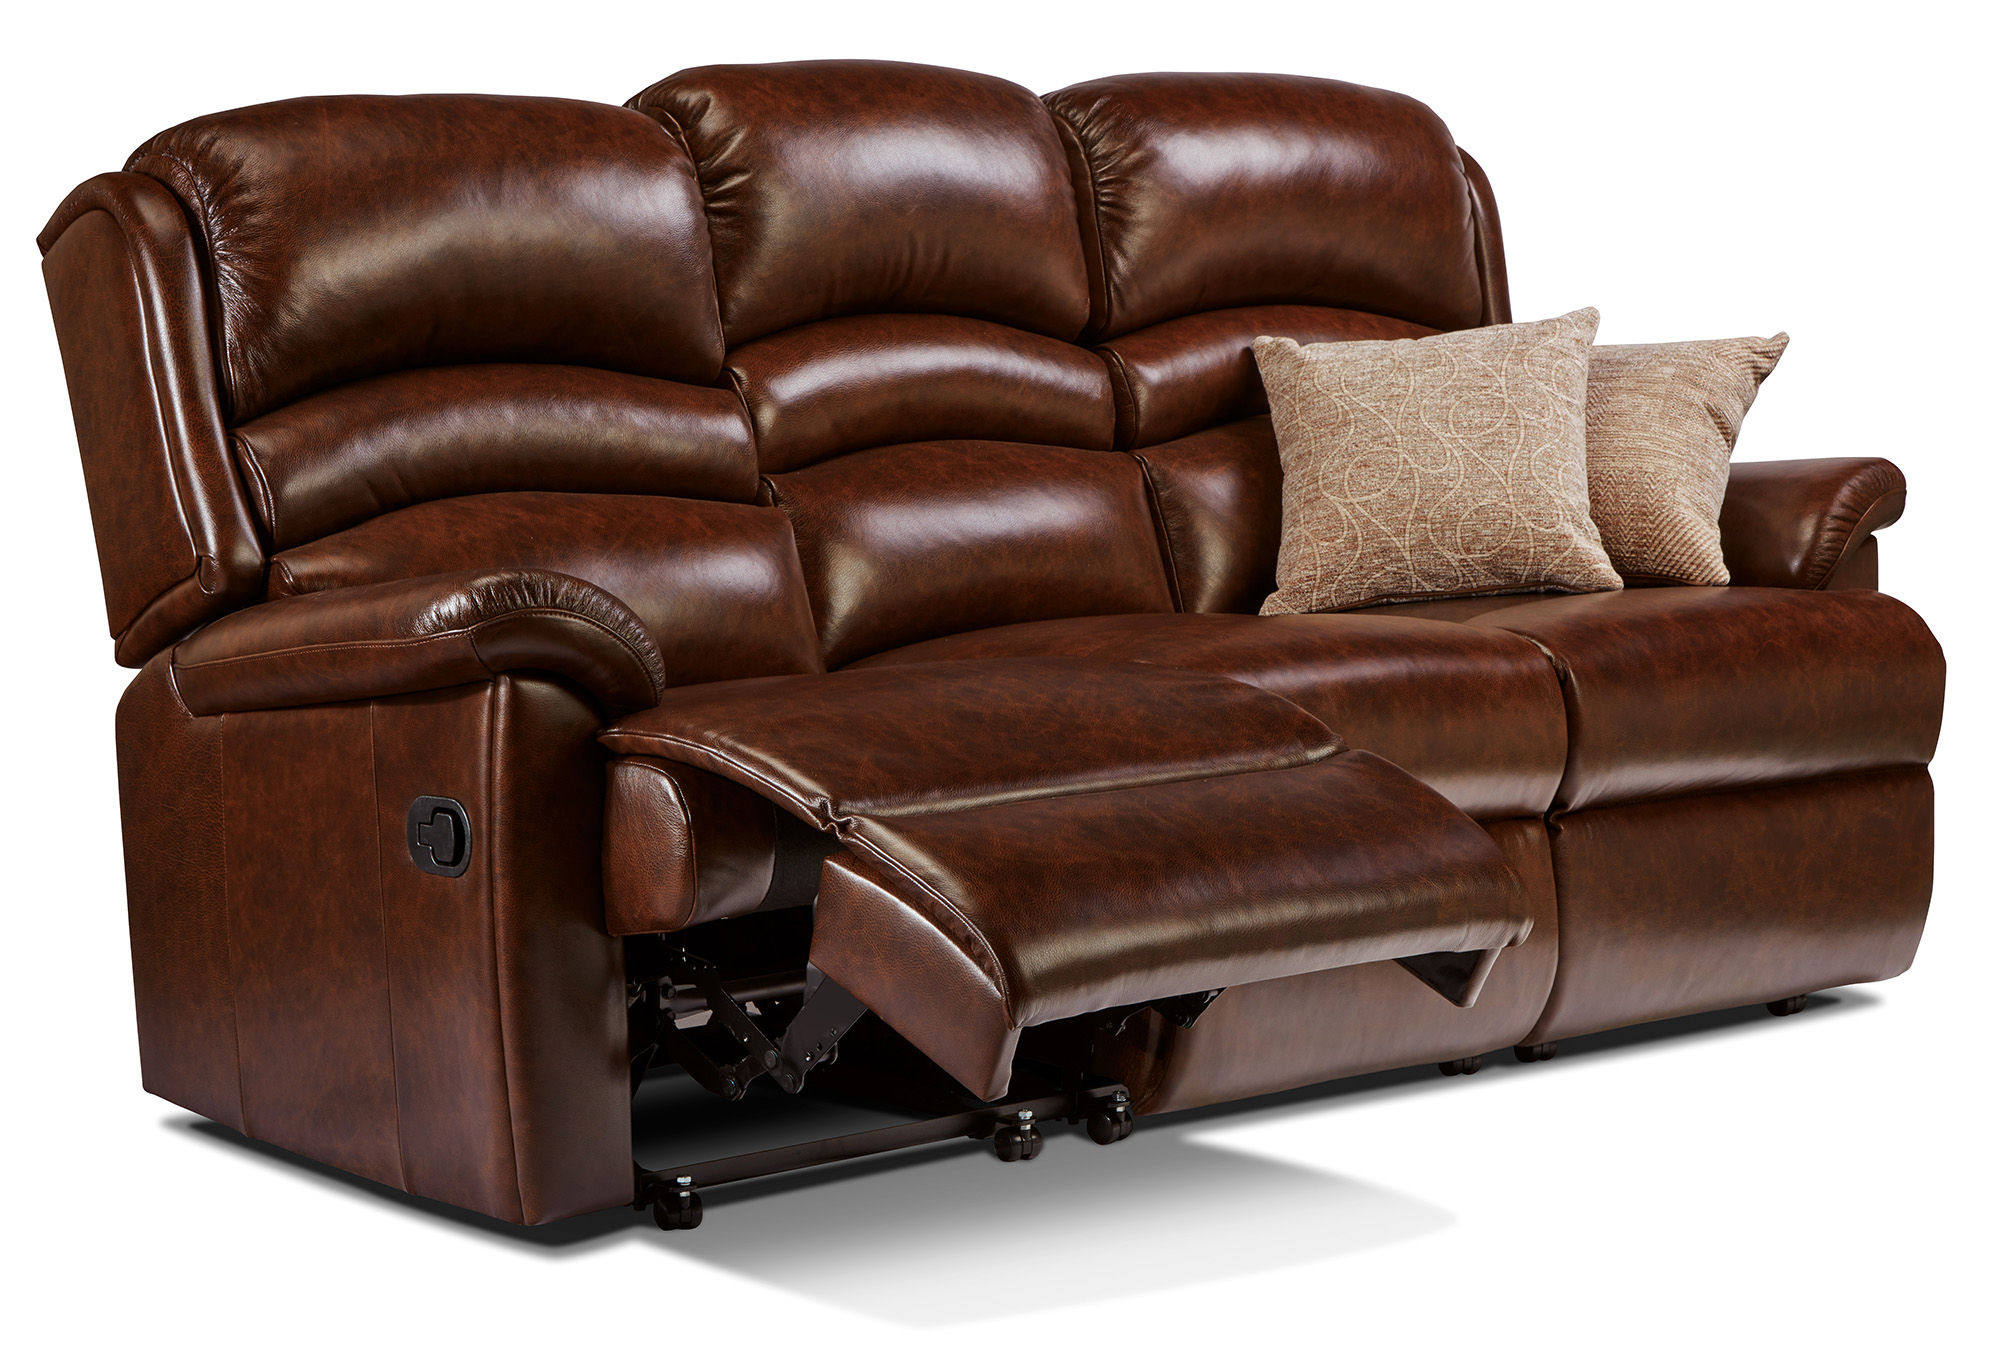 Olivia Standard Leather Reclining 3 Seater Settee